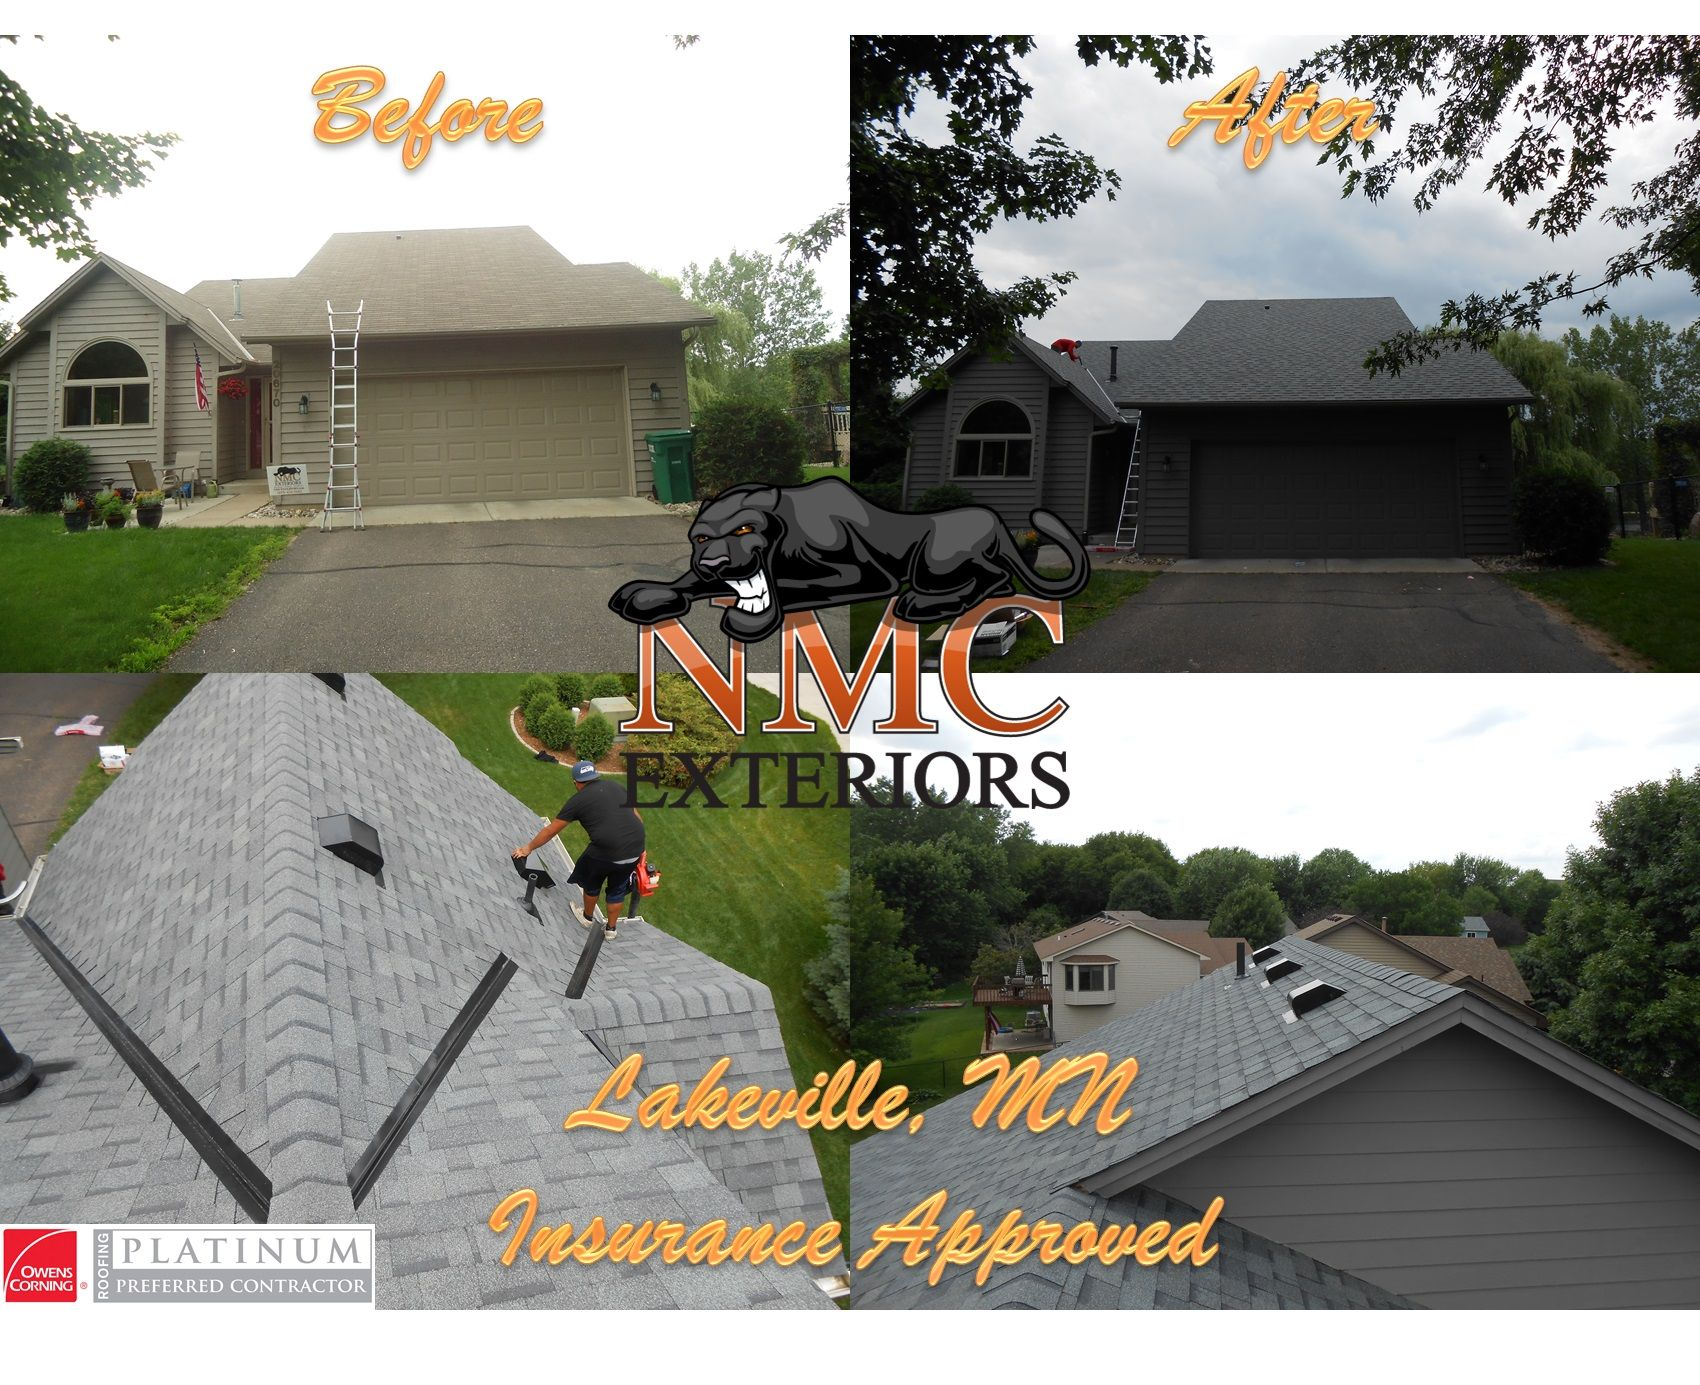 This Family Reached Out To Nmc For Insurance Help And Got Exactly What The Wanted Approval And Coverage Click To Learn Siding Contractors Roof Siding Roofing